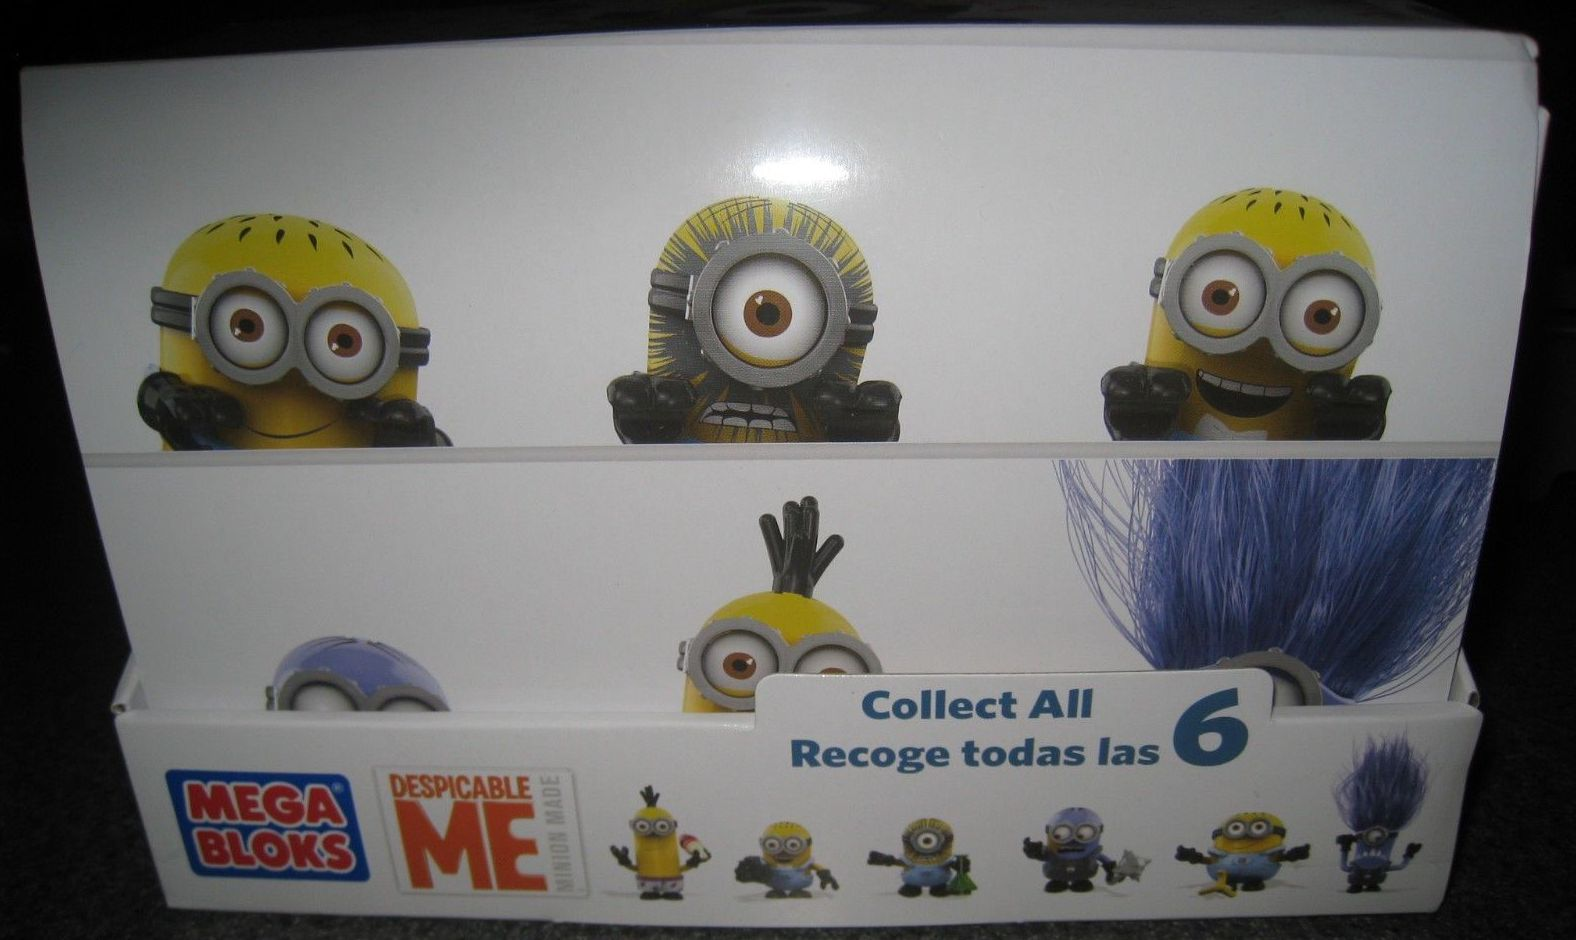 Minion Camera Case : Code number list: despicable me minions mega bloks series 1